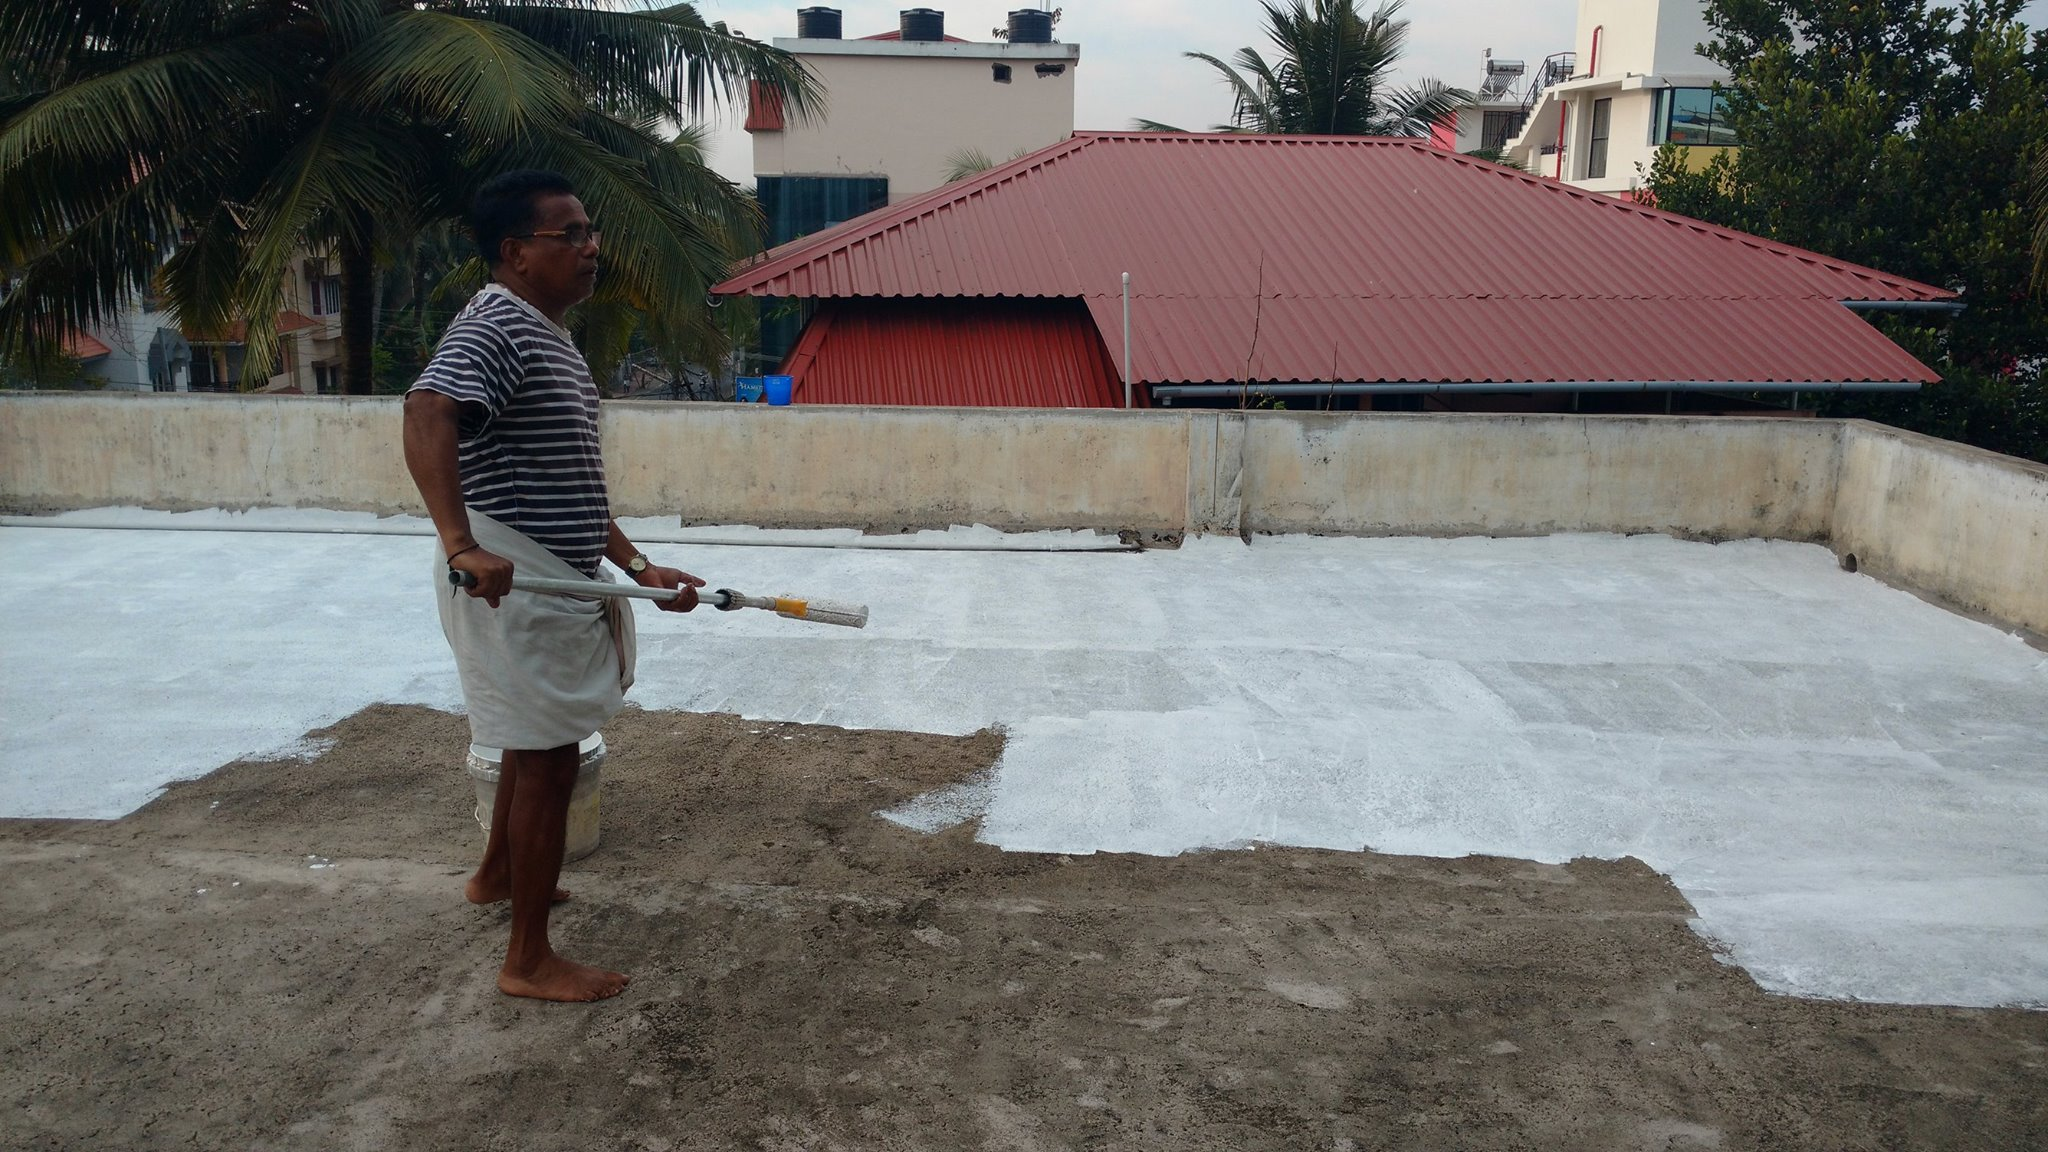 Whitewashing rooftop can take the edge off summer heat